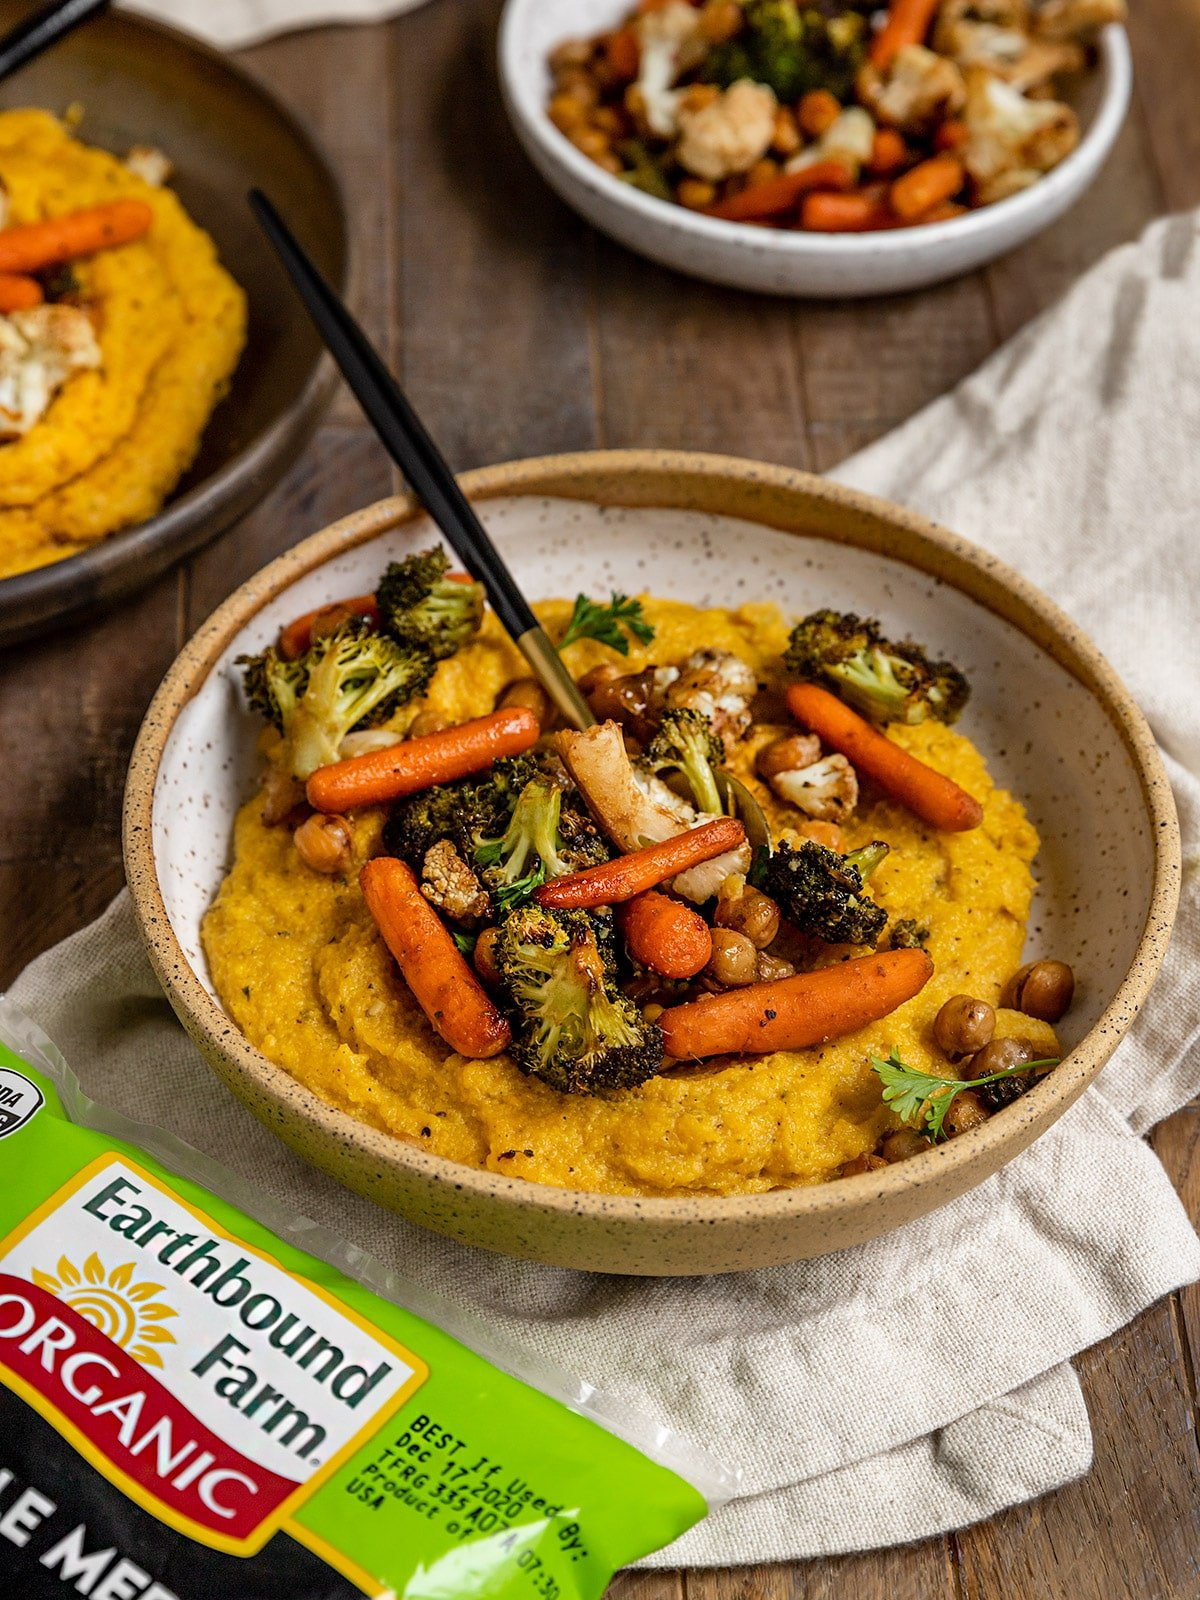 bowl of polenta with carrots, chickpeas, broccoli, cauliflower, and a spoon